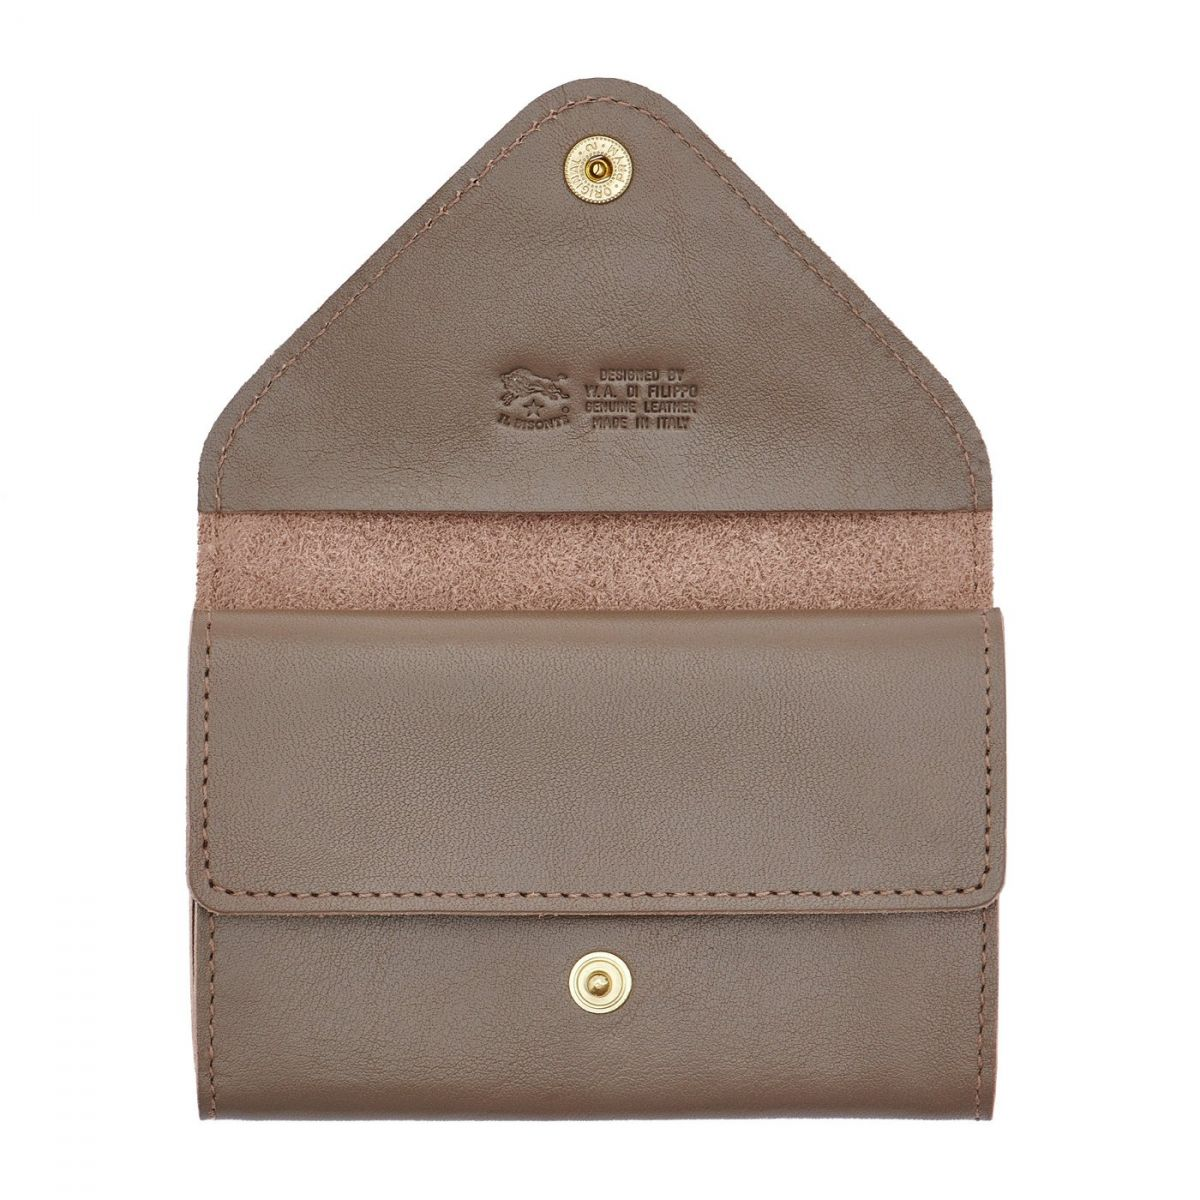 Card Case in Cowhide Double Leather color Light Grey - SCC039 | Details